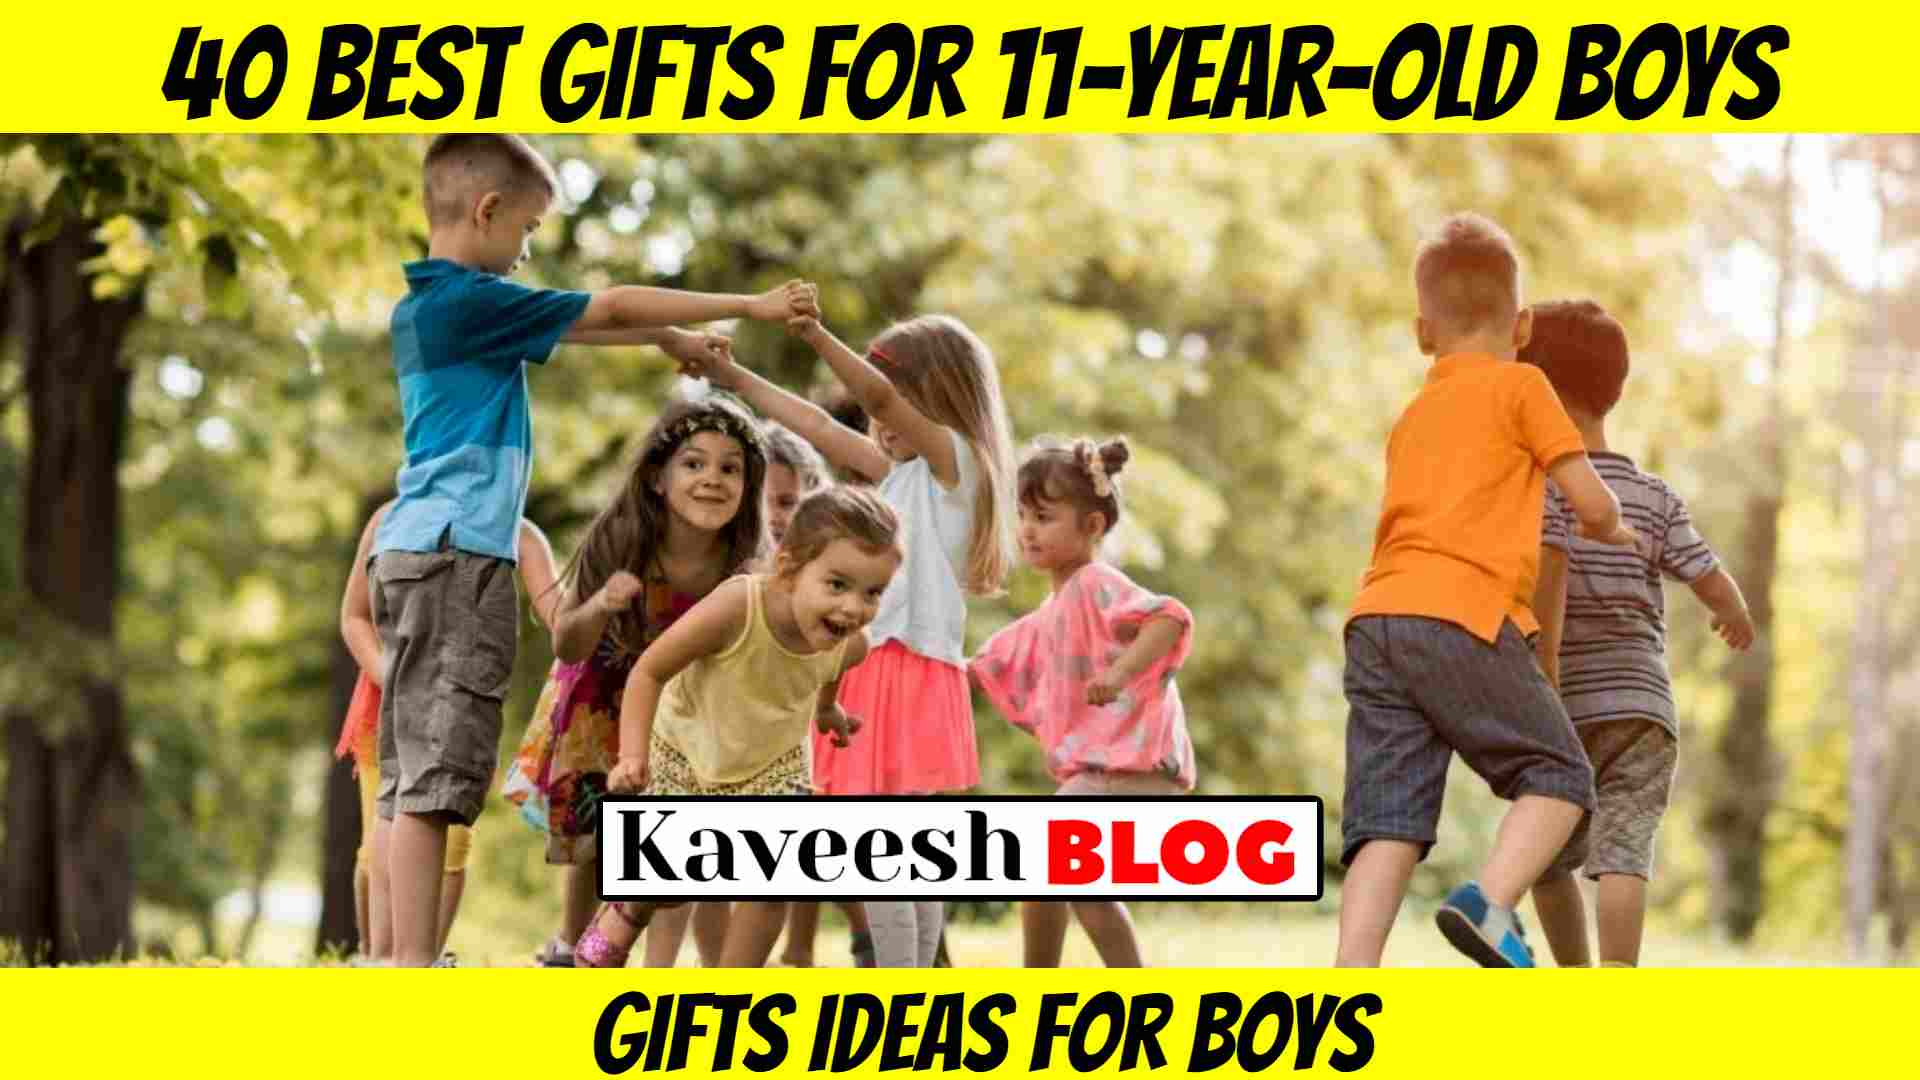 40 Best Gifts For 11-year-old Boys In (2020) Gifts Ideas For Boys 1